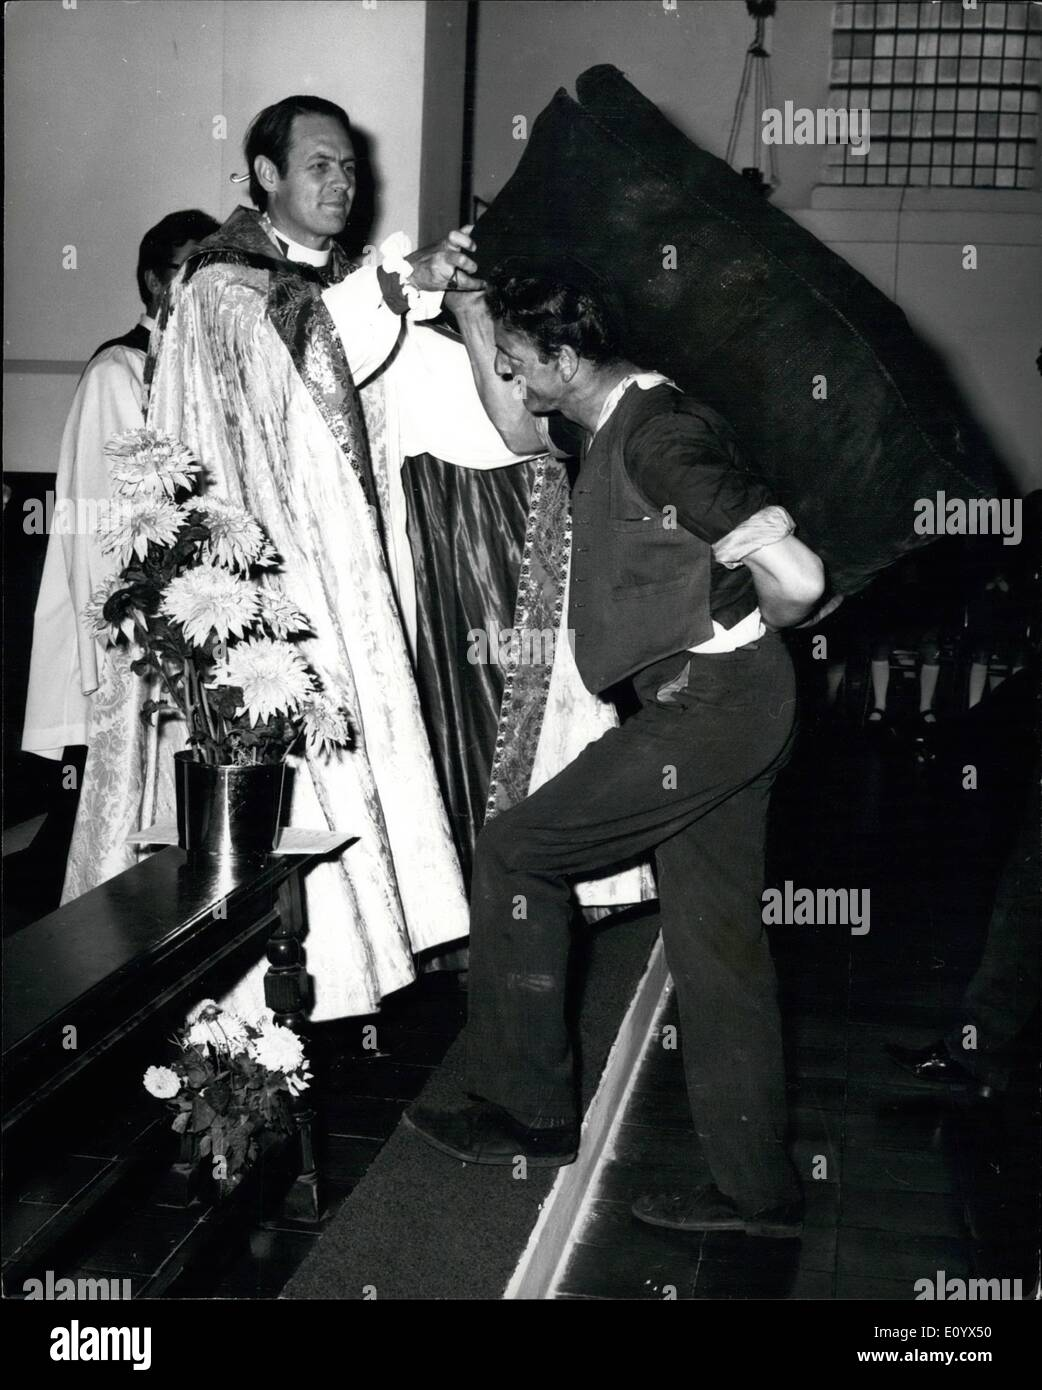 Sep. 09, 1971 - Workers' Thanksgiving Service: Taking delivery of some best household nuts at the altar of St. Barnabas Church on the G.L.C.'s Downham council estate yesterday - the Rt. Rev. David Sheppard, Bishop Suffragan of Woolwich, accepting a gift from Mr. Lal Roff, 47, a local coalman, during a workers' thanksgiving service. The congregation included nurses, dustmen and cleaners who carried the tools of their trade. - Stock Image